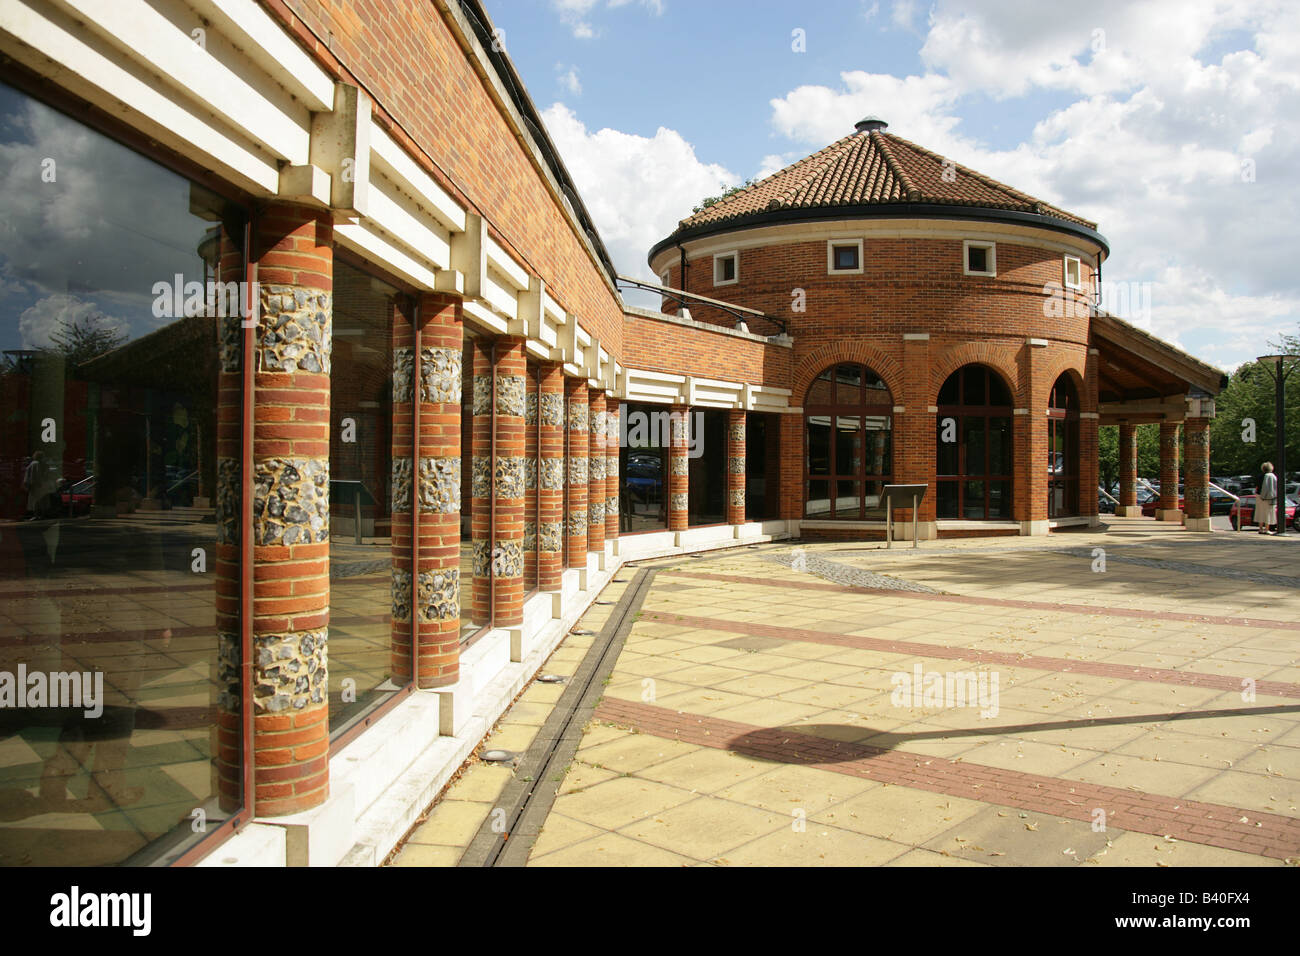 City of St Albans, England. The Verulamium Museum 'The Museum of Everyday Life in Roman Britain' at Verulamium - Stock Image